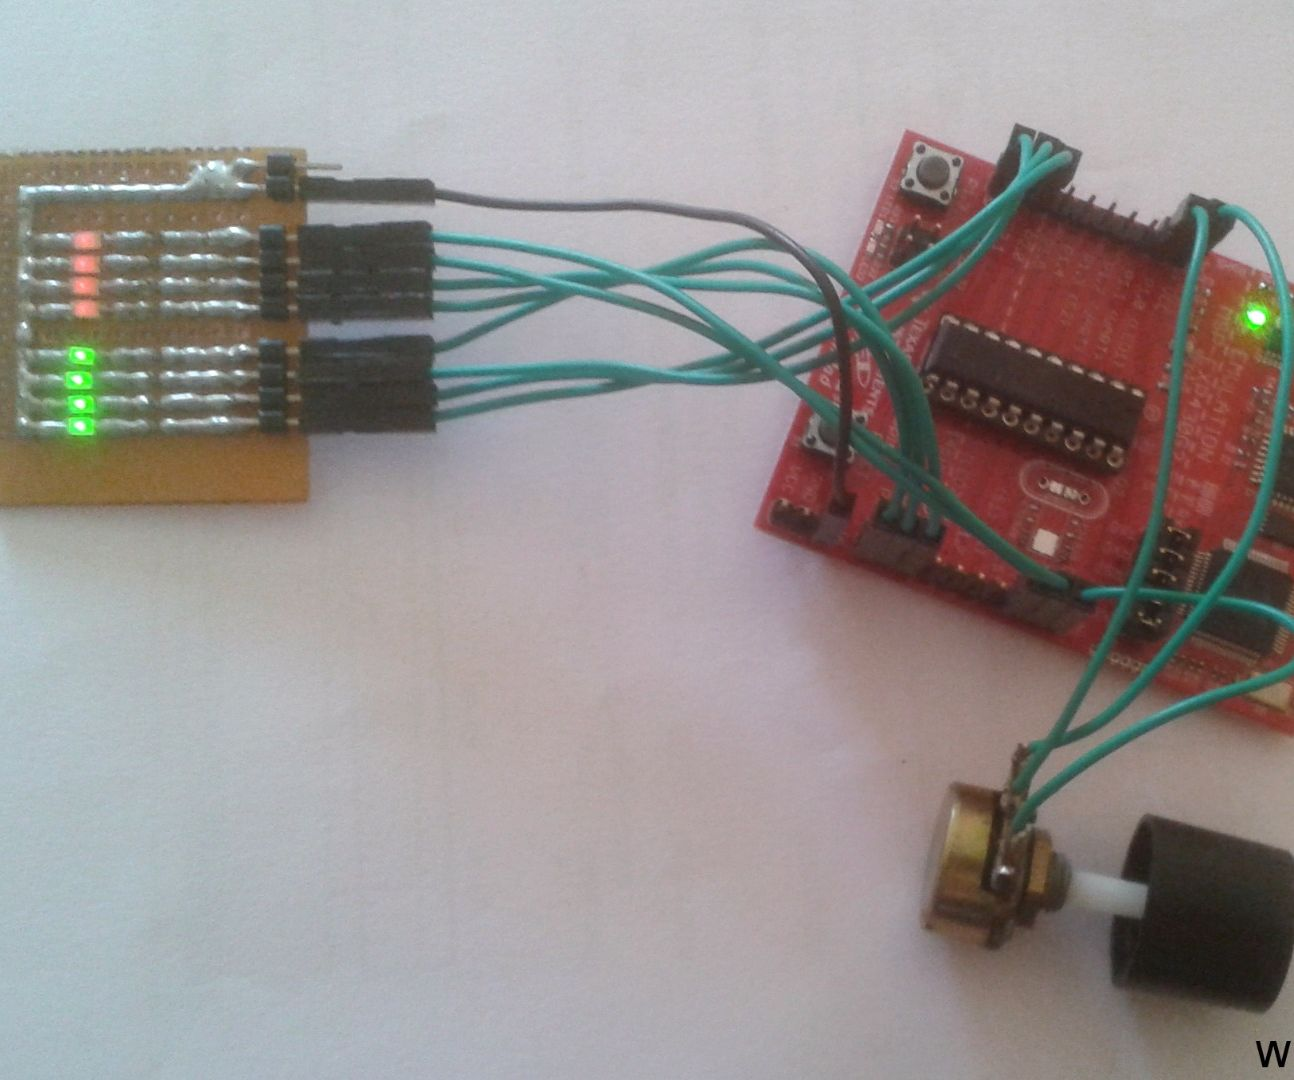 ADC10 Tutorial for MSP430 Launchpad: 7 Steps